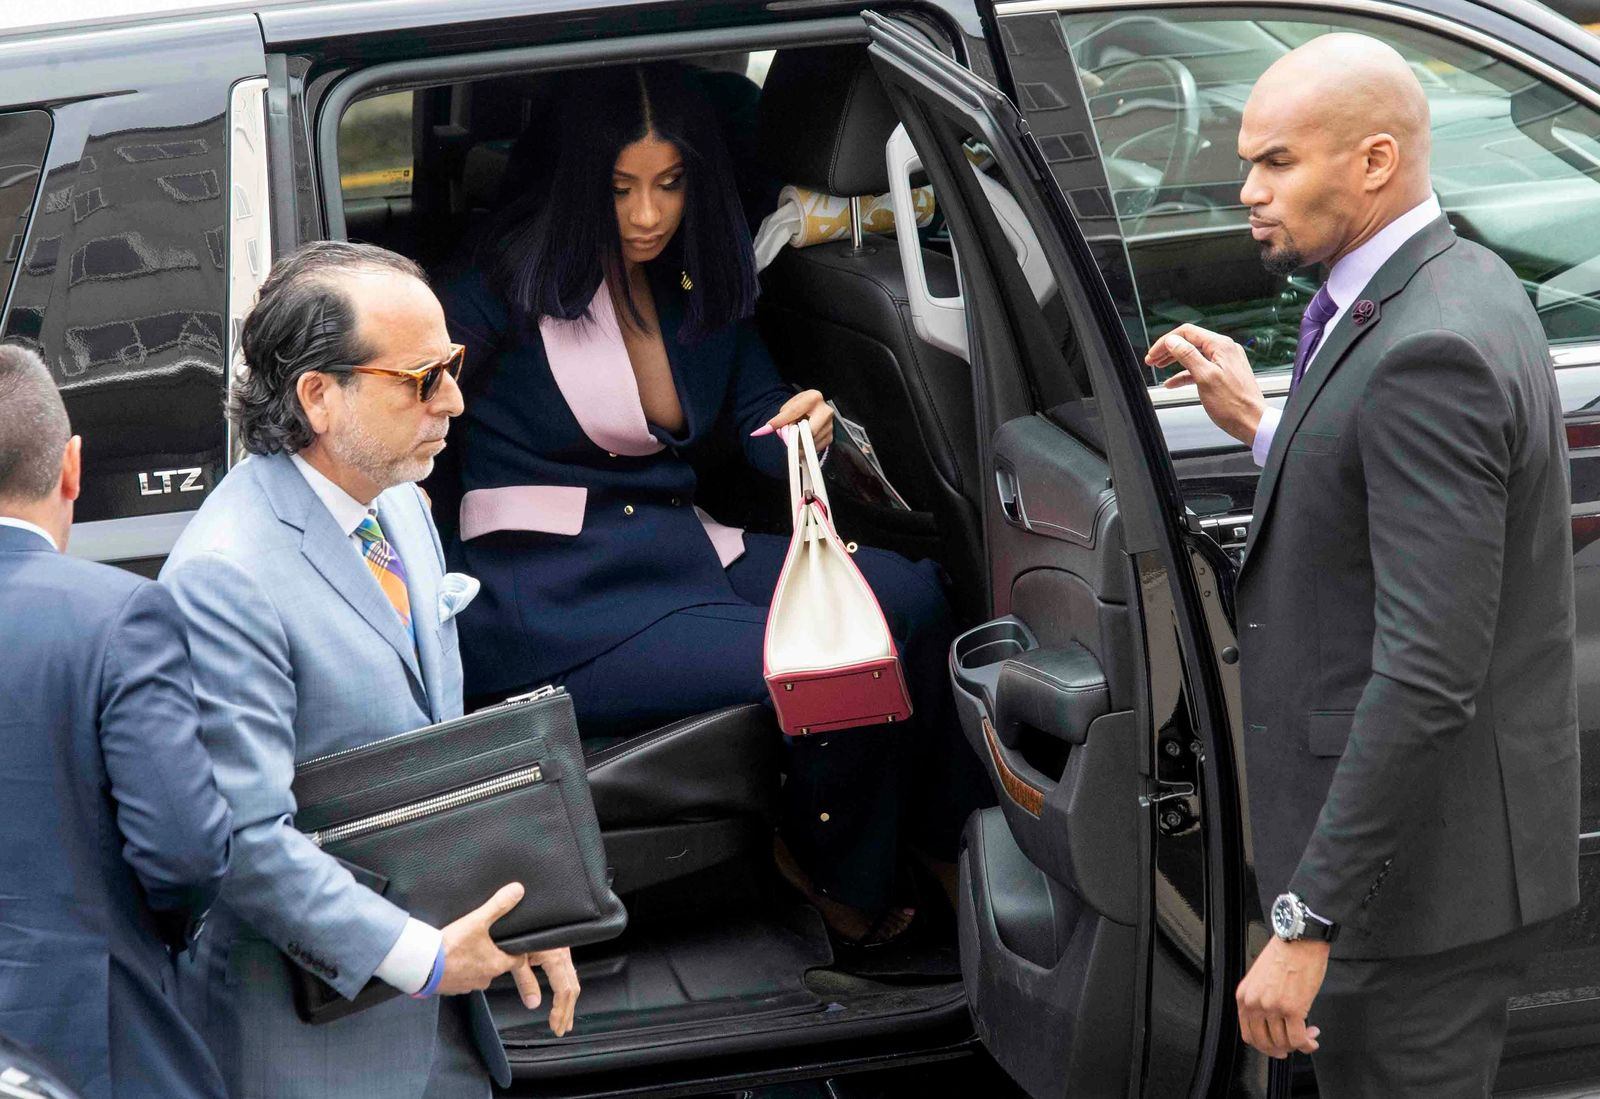 Grammy-winning rapper Cardi B arrives for a hearing at Queens County Criminal Court, Tuesday, June 25, 2019, in New York. (AP Photo/Mary Altaffer)